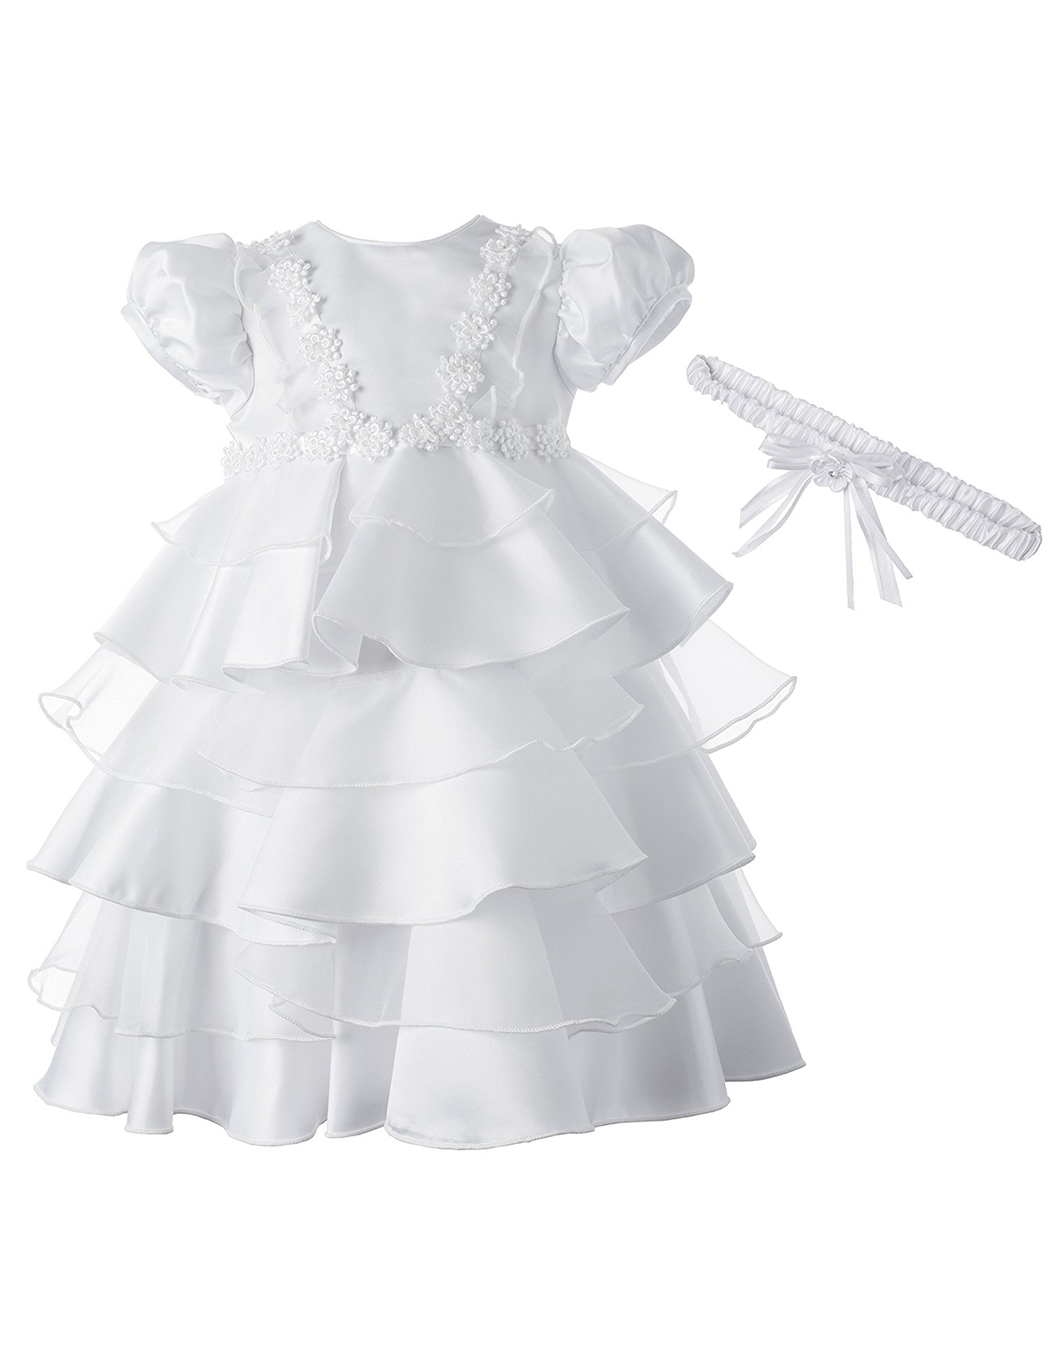 Ericdress Baby Girls Tiered Pleats Christening Gown with Headband